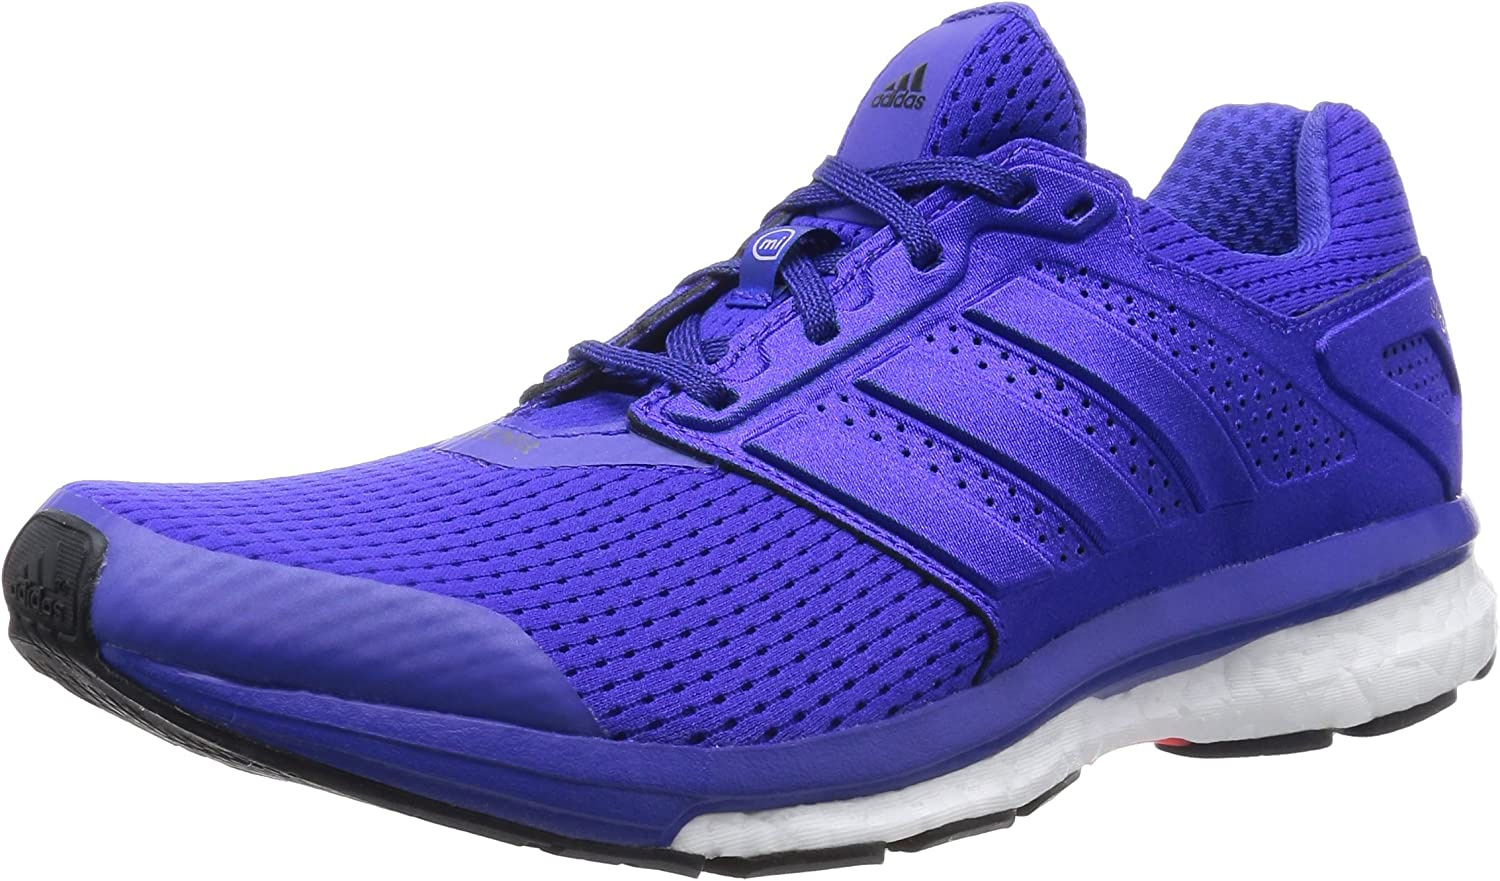 billiger Laden Glide Supernova Adidas Boost 7 Damen